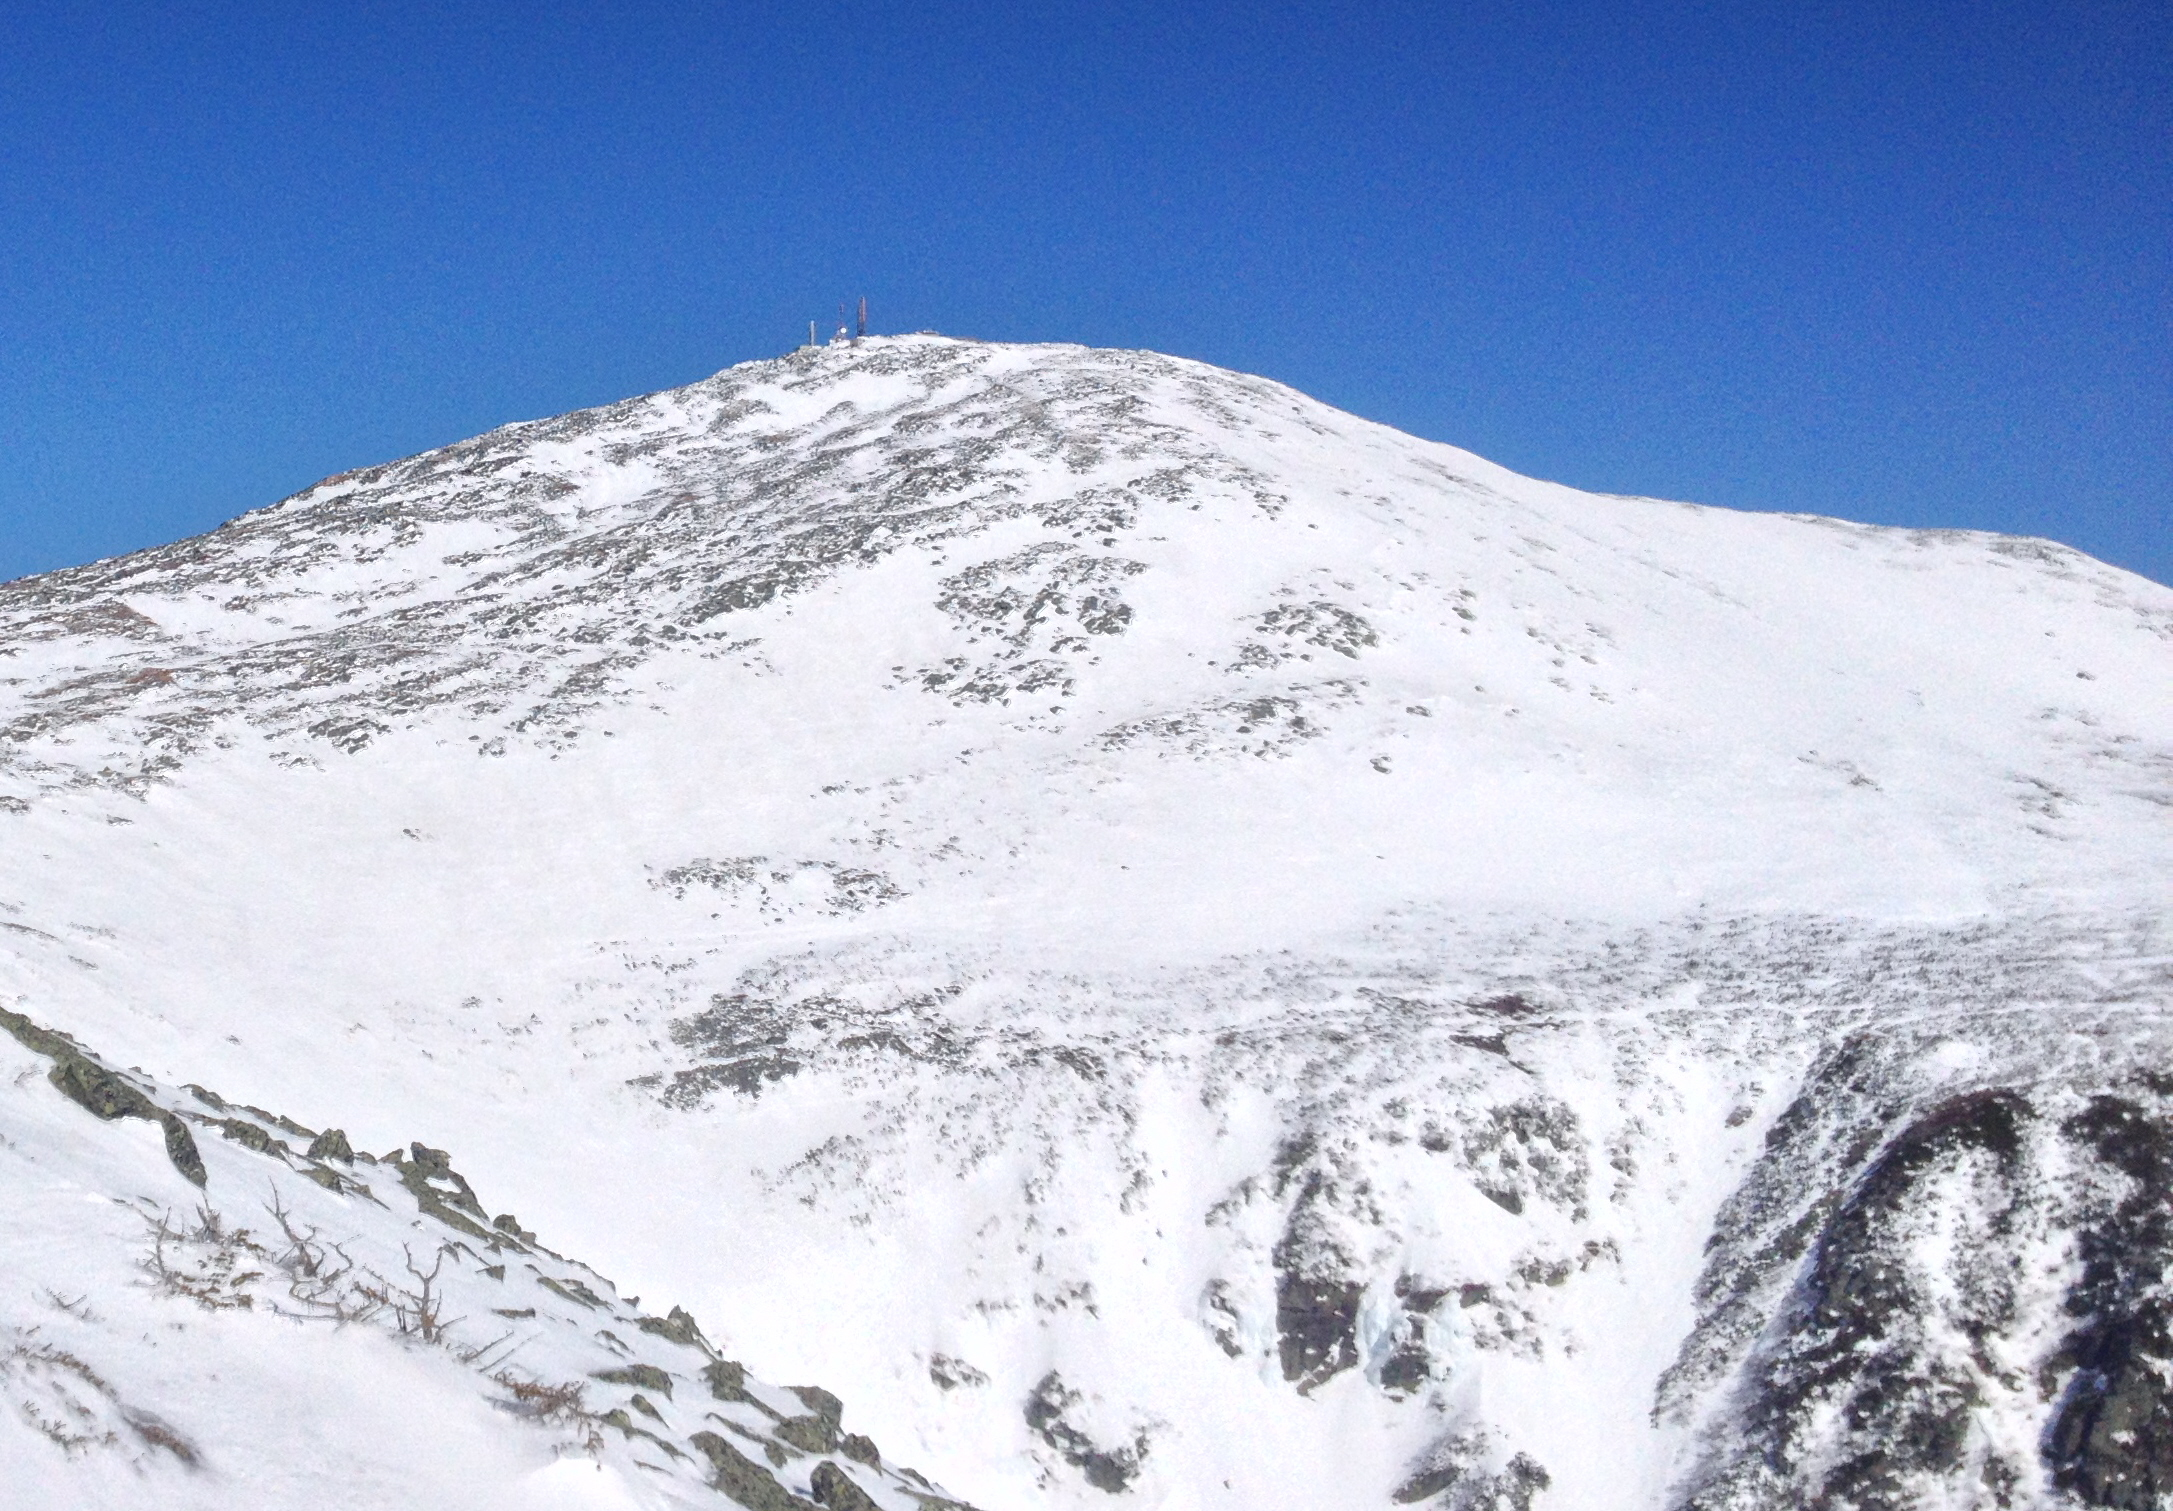 The summit cone from the top of the Duchess, April 12, 2014. Alex Leich photo.